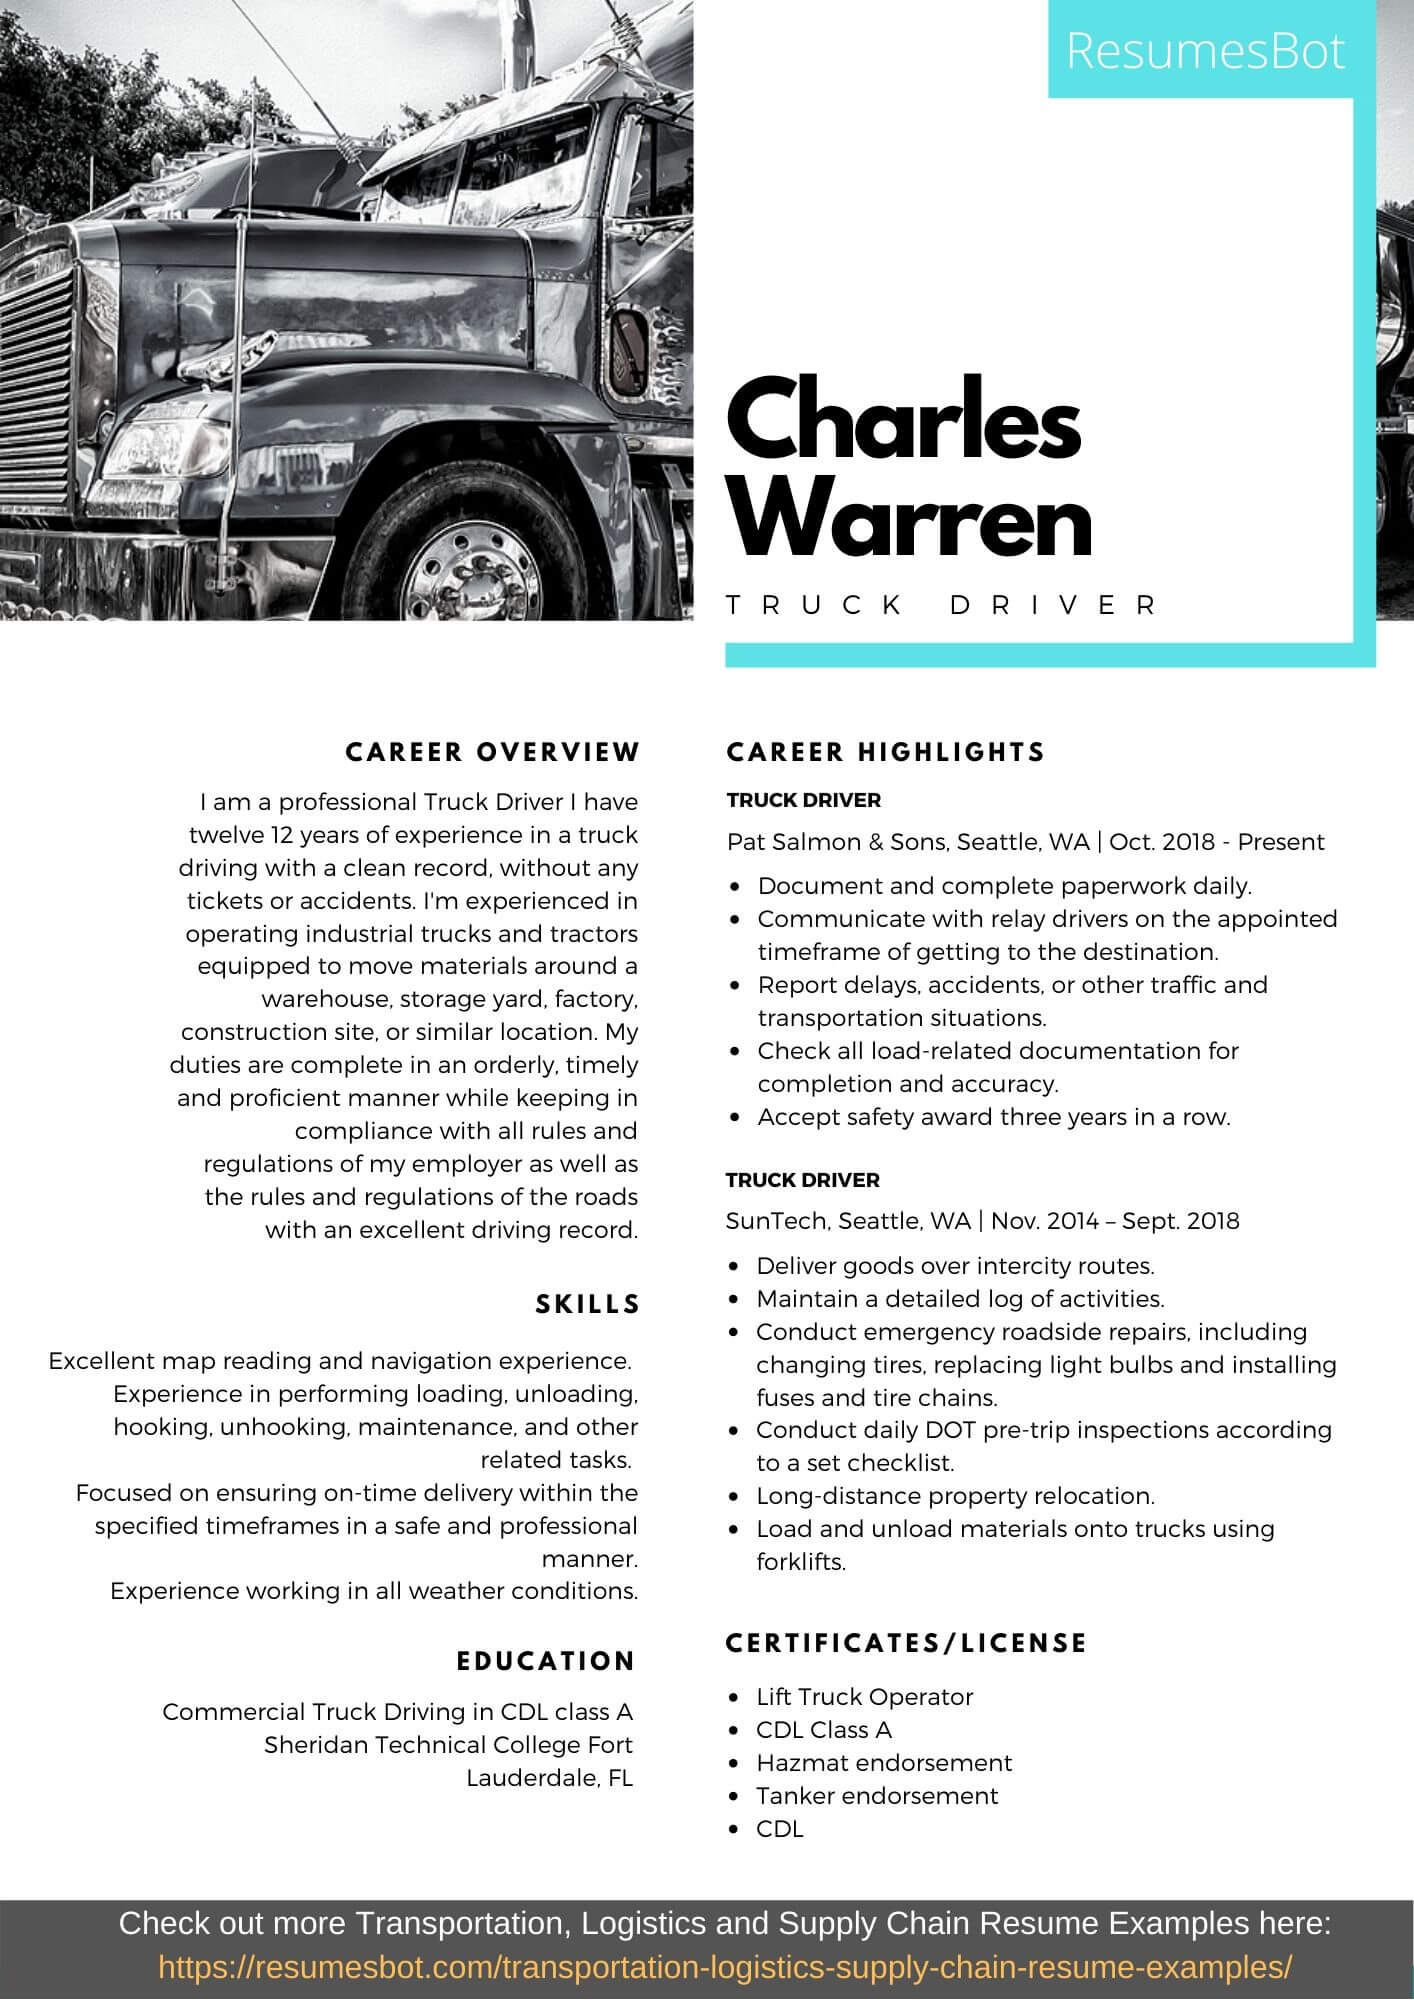 truck driver resume samples and tips pdf resumes bot cdl job description for example Resume Cdl Truck Driver Job Description For Resume